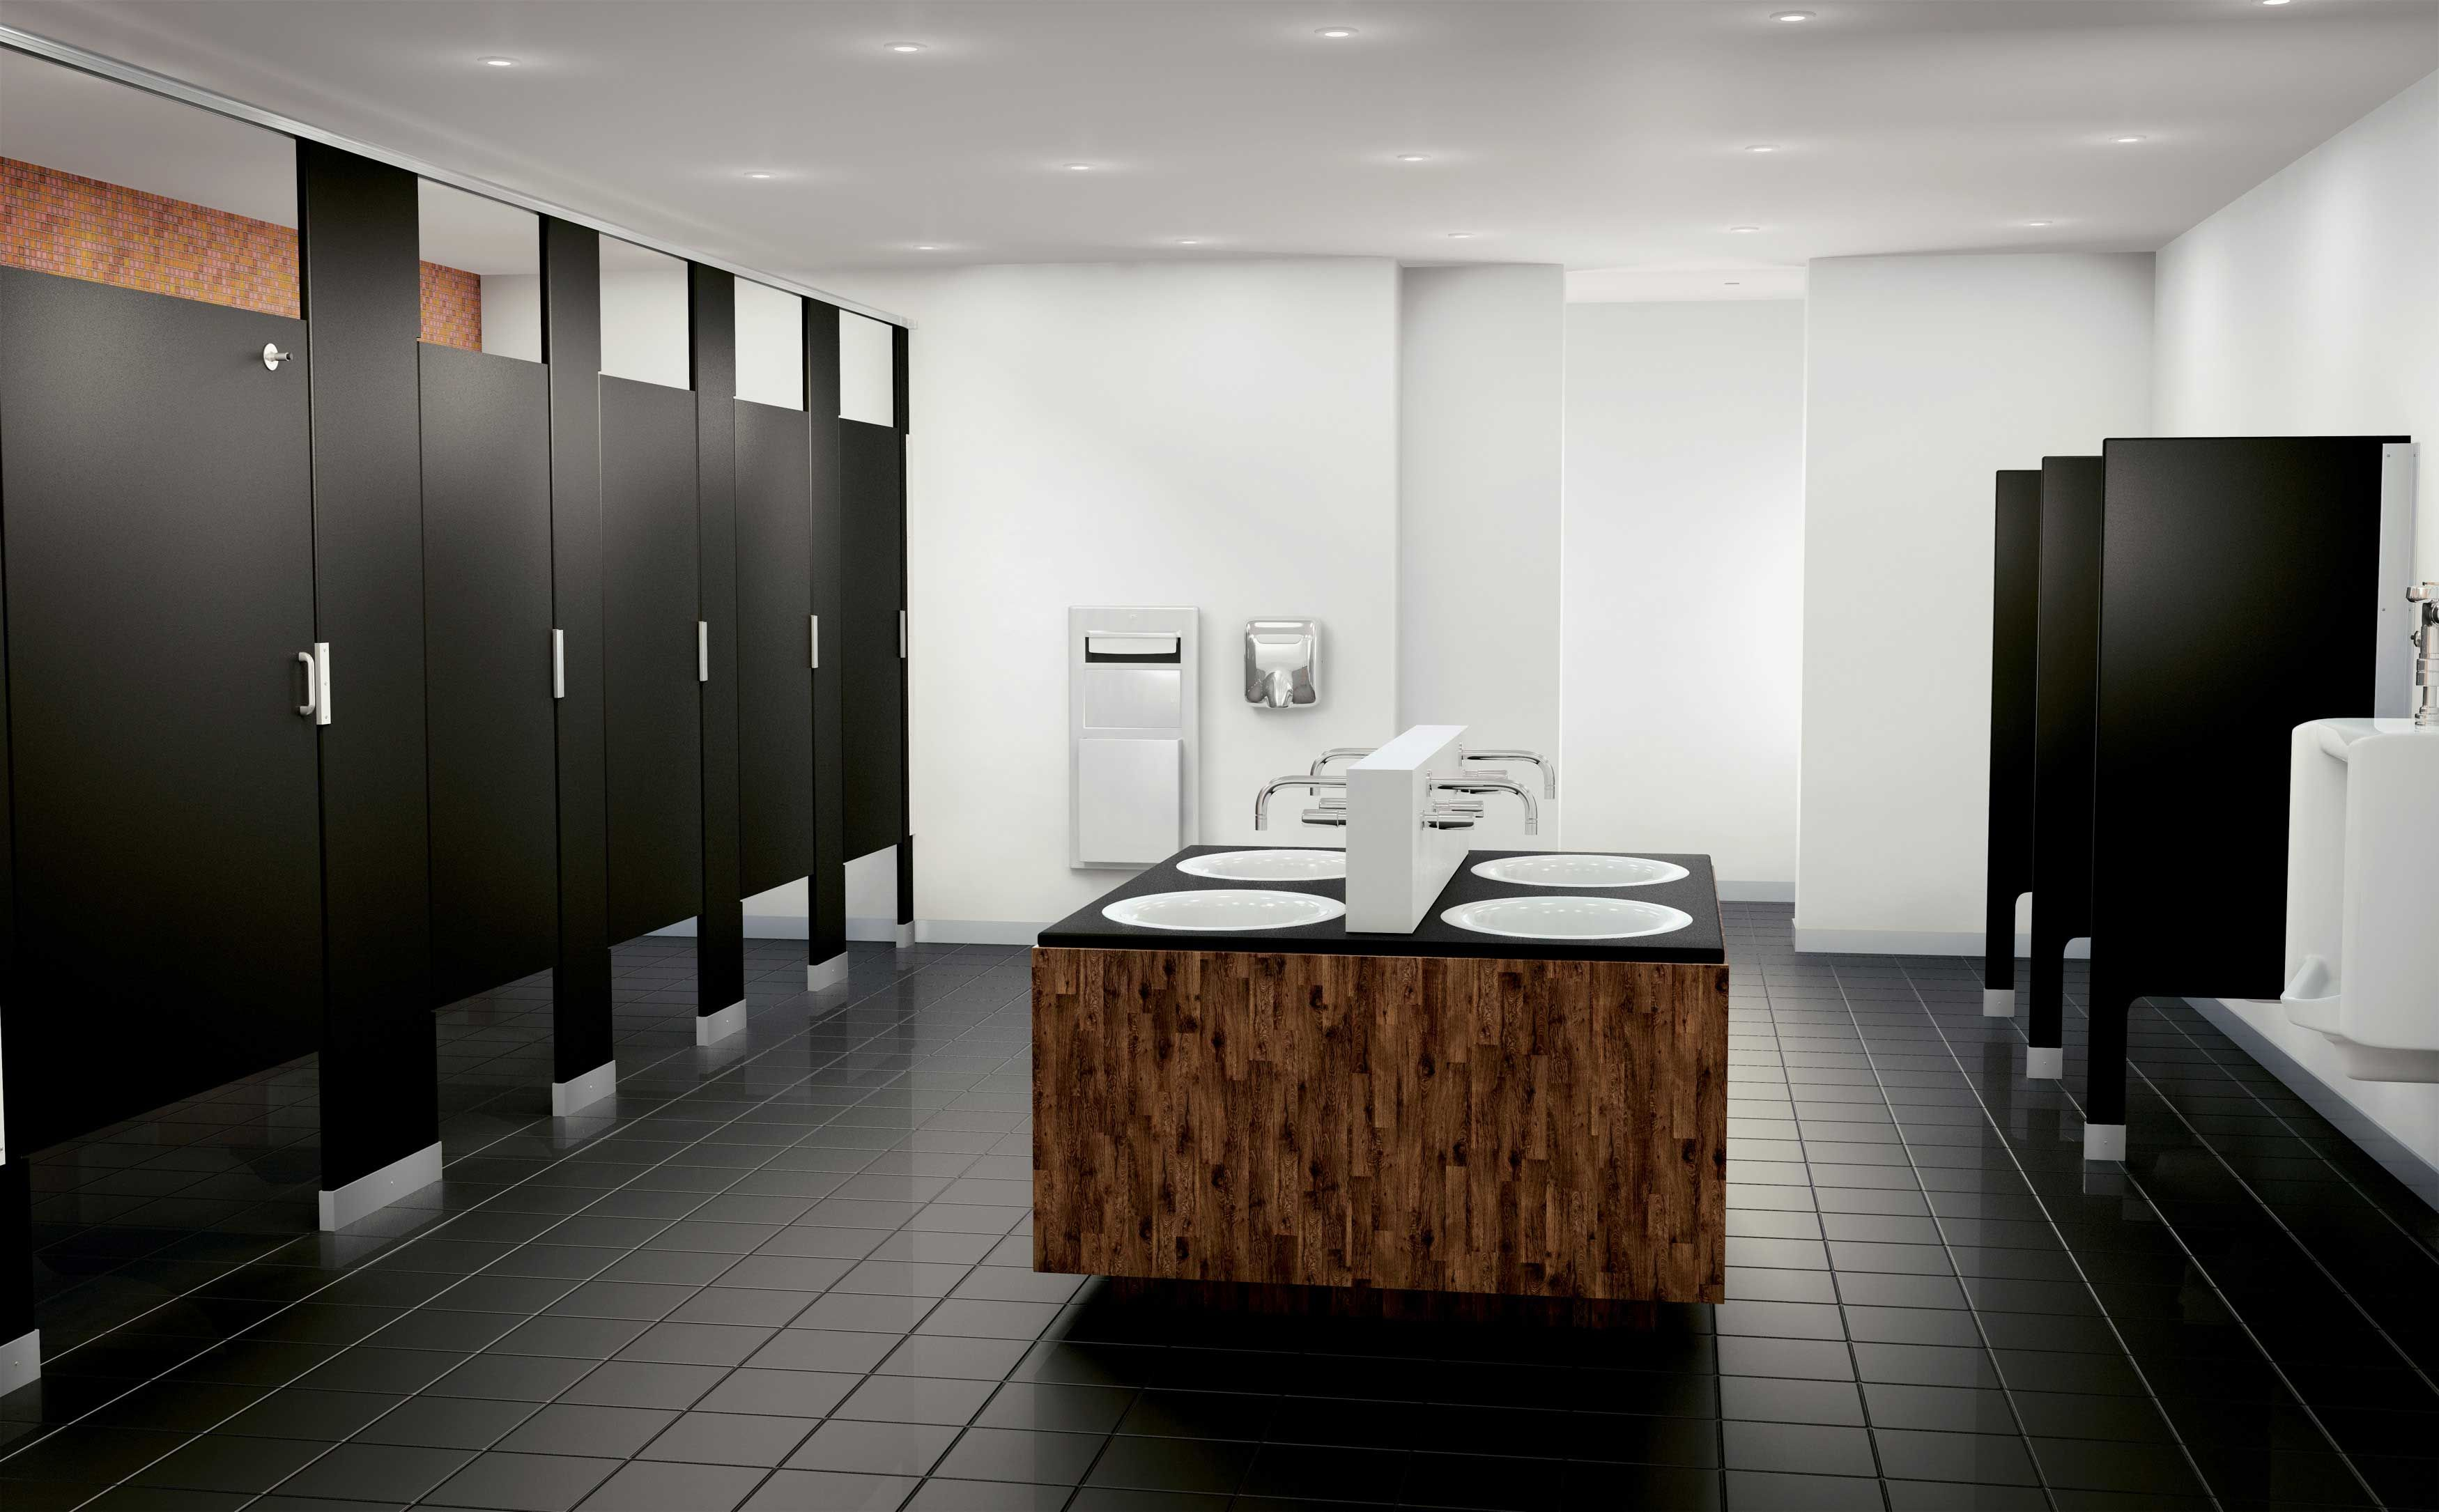 Bathroom Partitions Omaha Ne information on buying toilet partitions for your business type